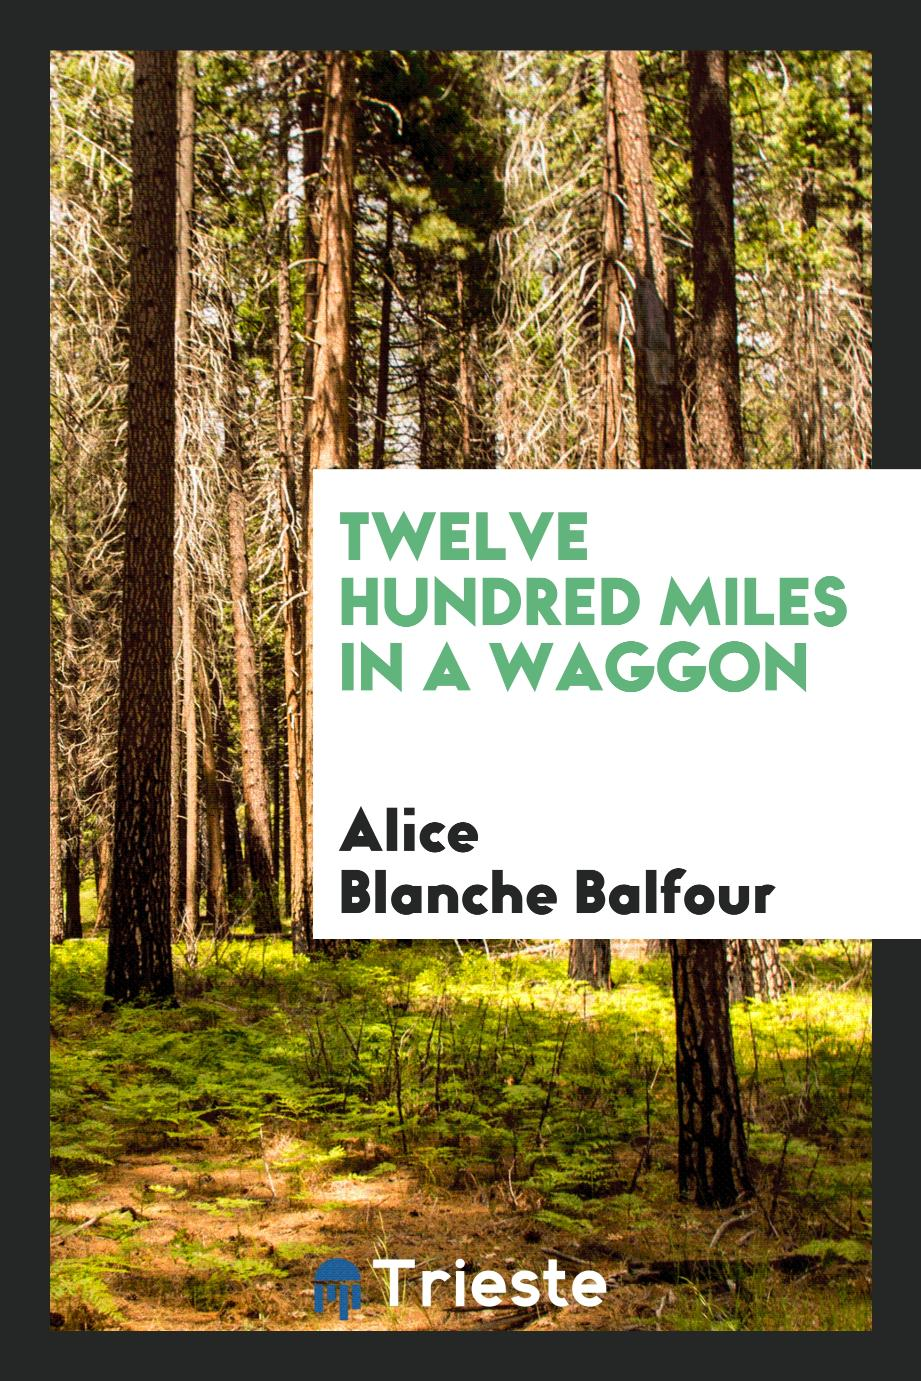 Twelve hundred miles in a waggon